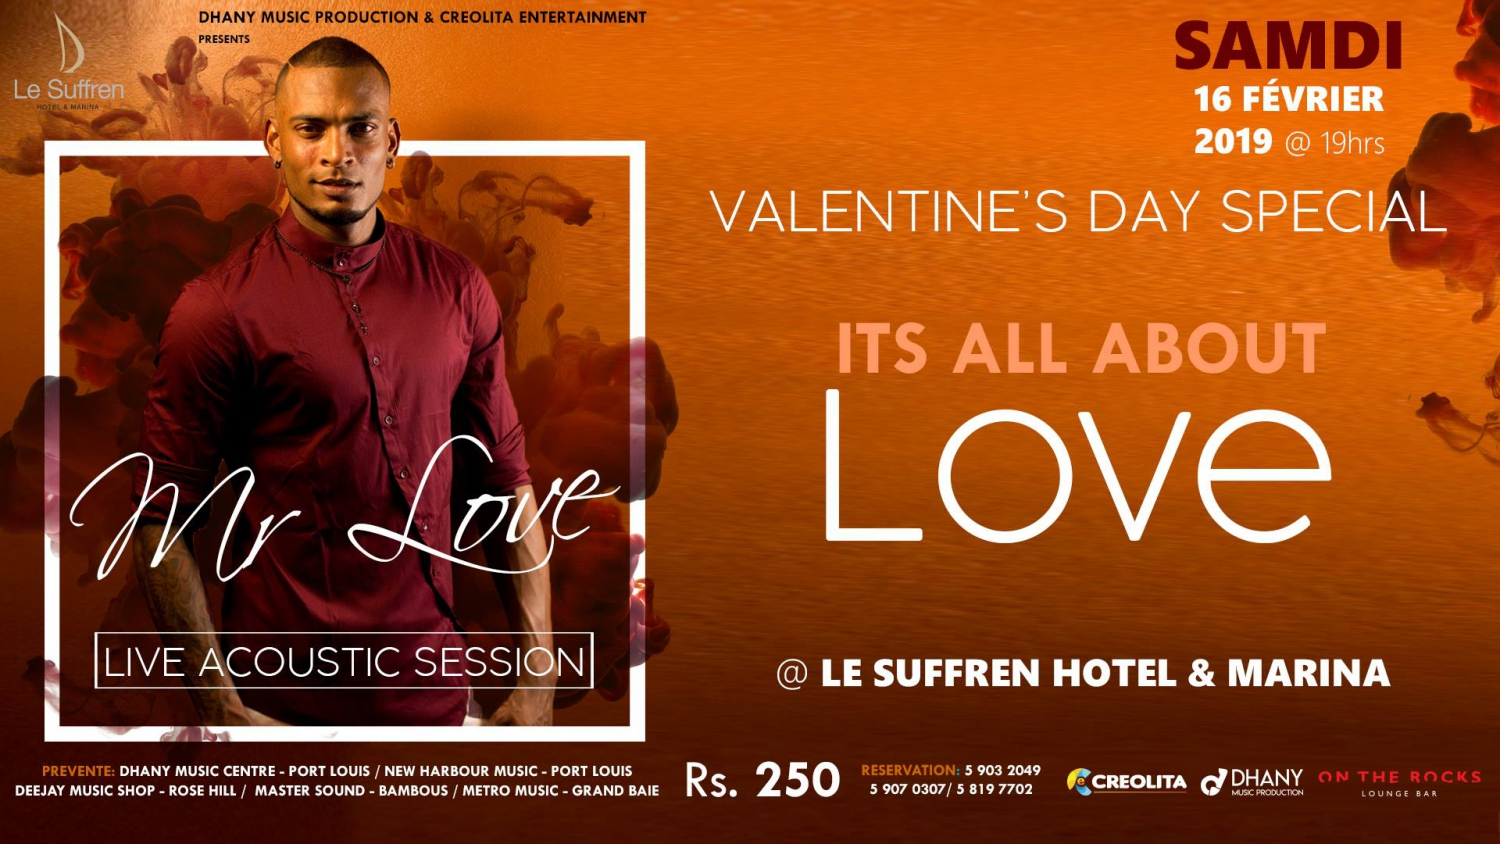 Valentine's Day @Le Suffren Hotel & Marina MR Love acoustic LIVE